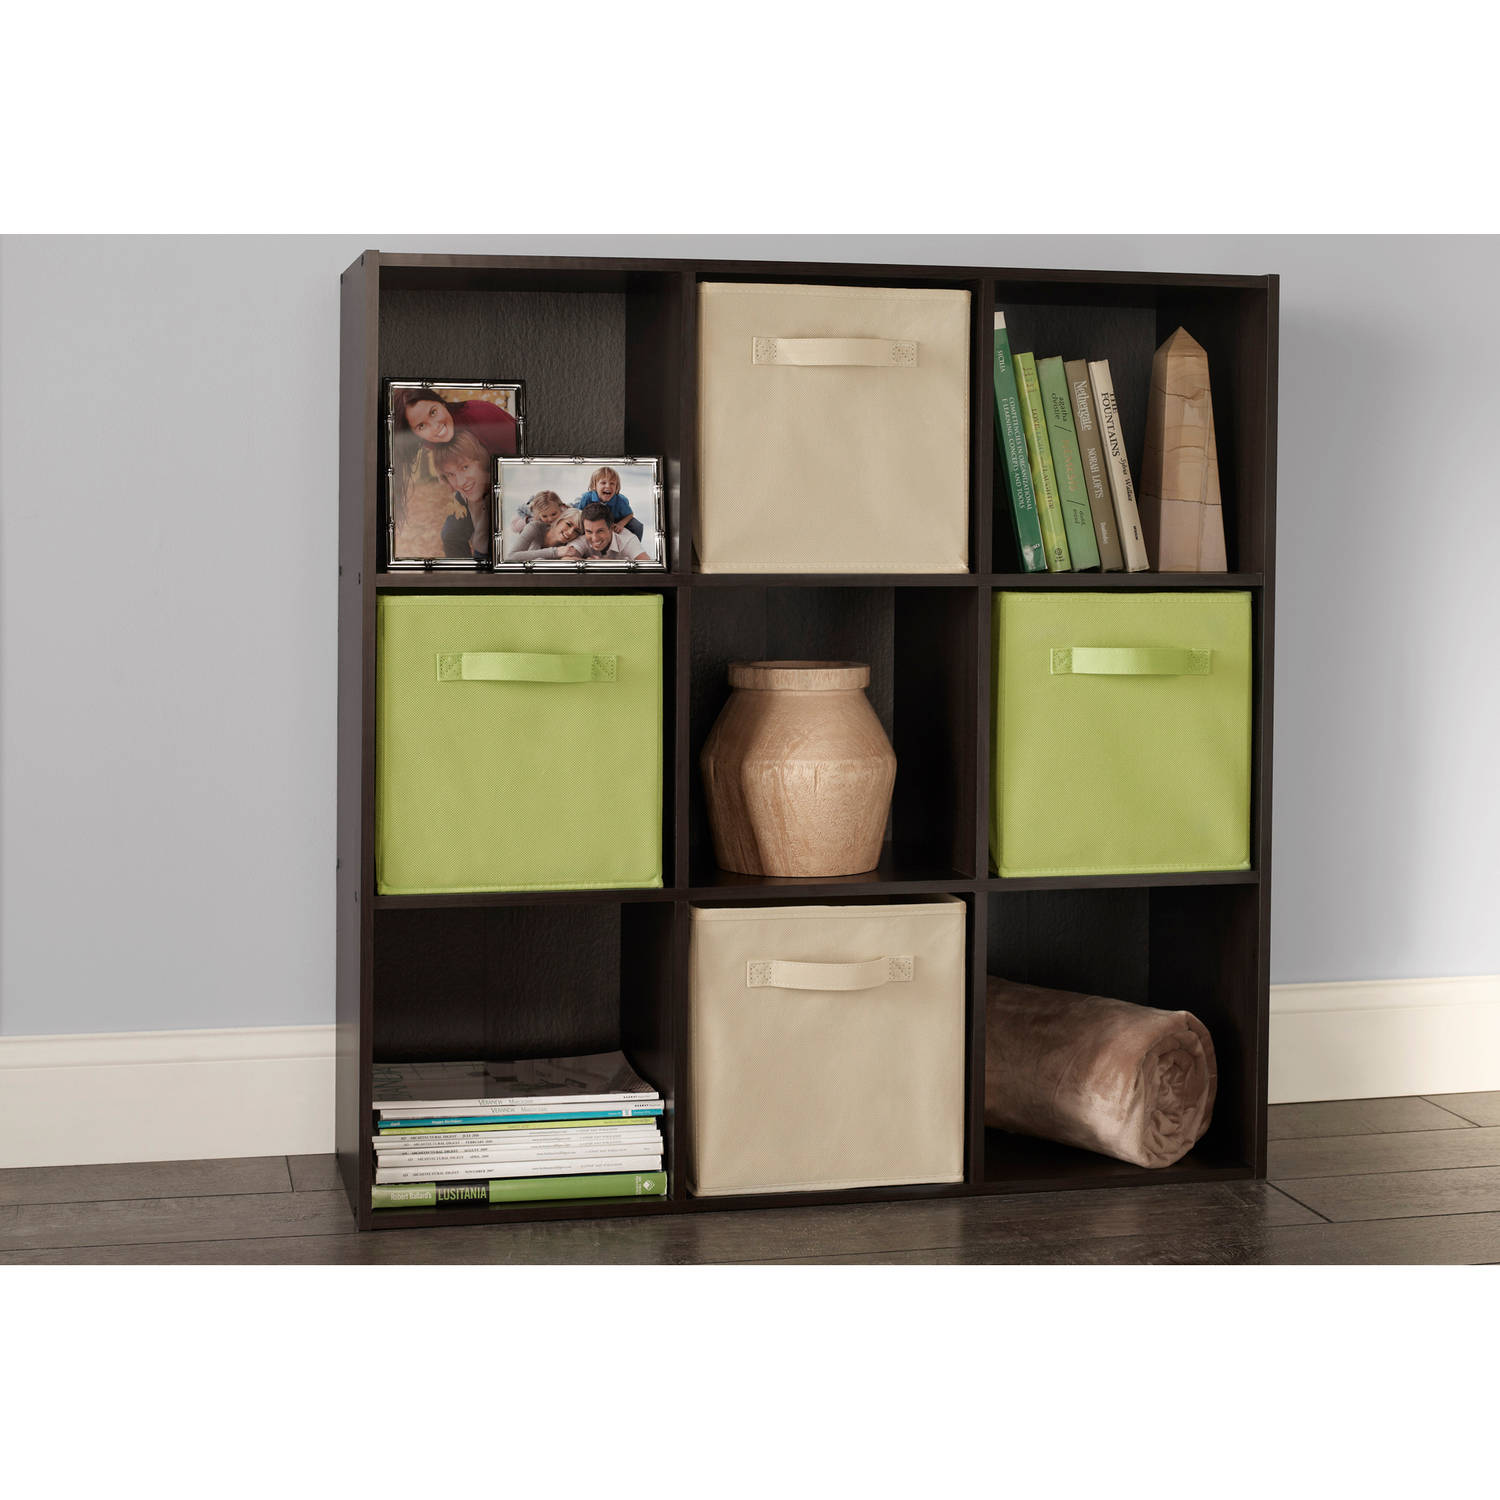 ClosetMaid Cubeicals 9-Cube Organizer, Espresso by Generic